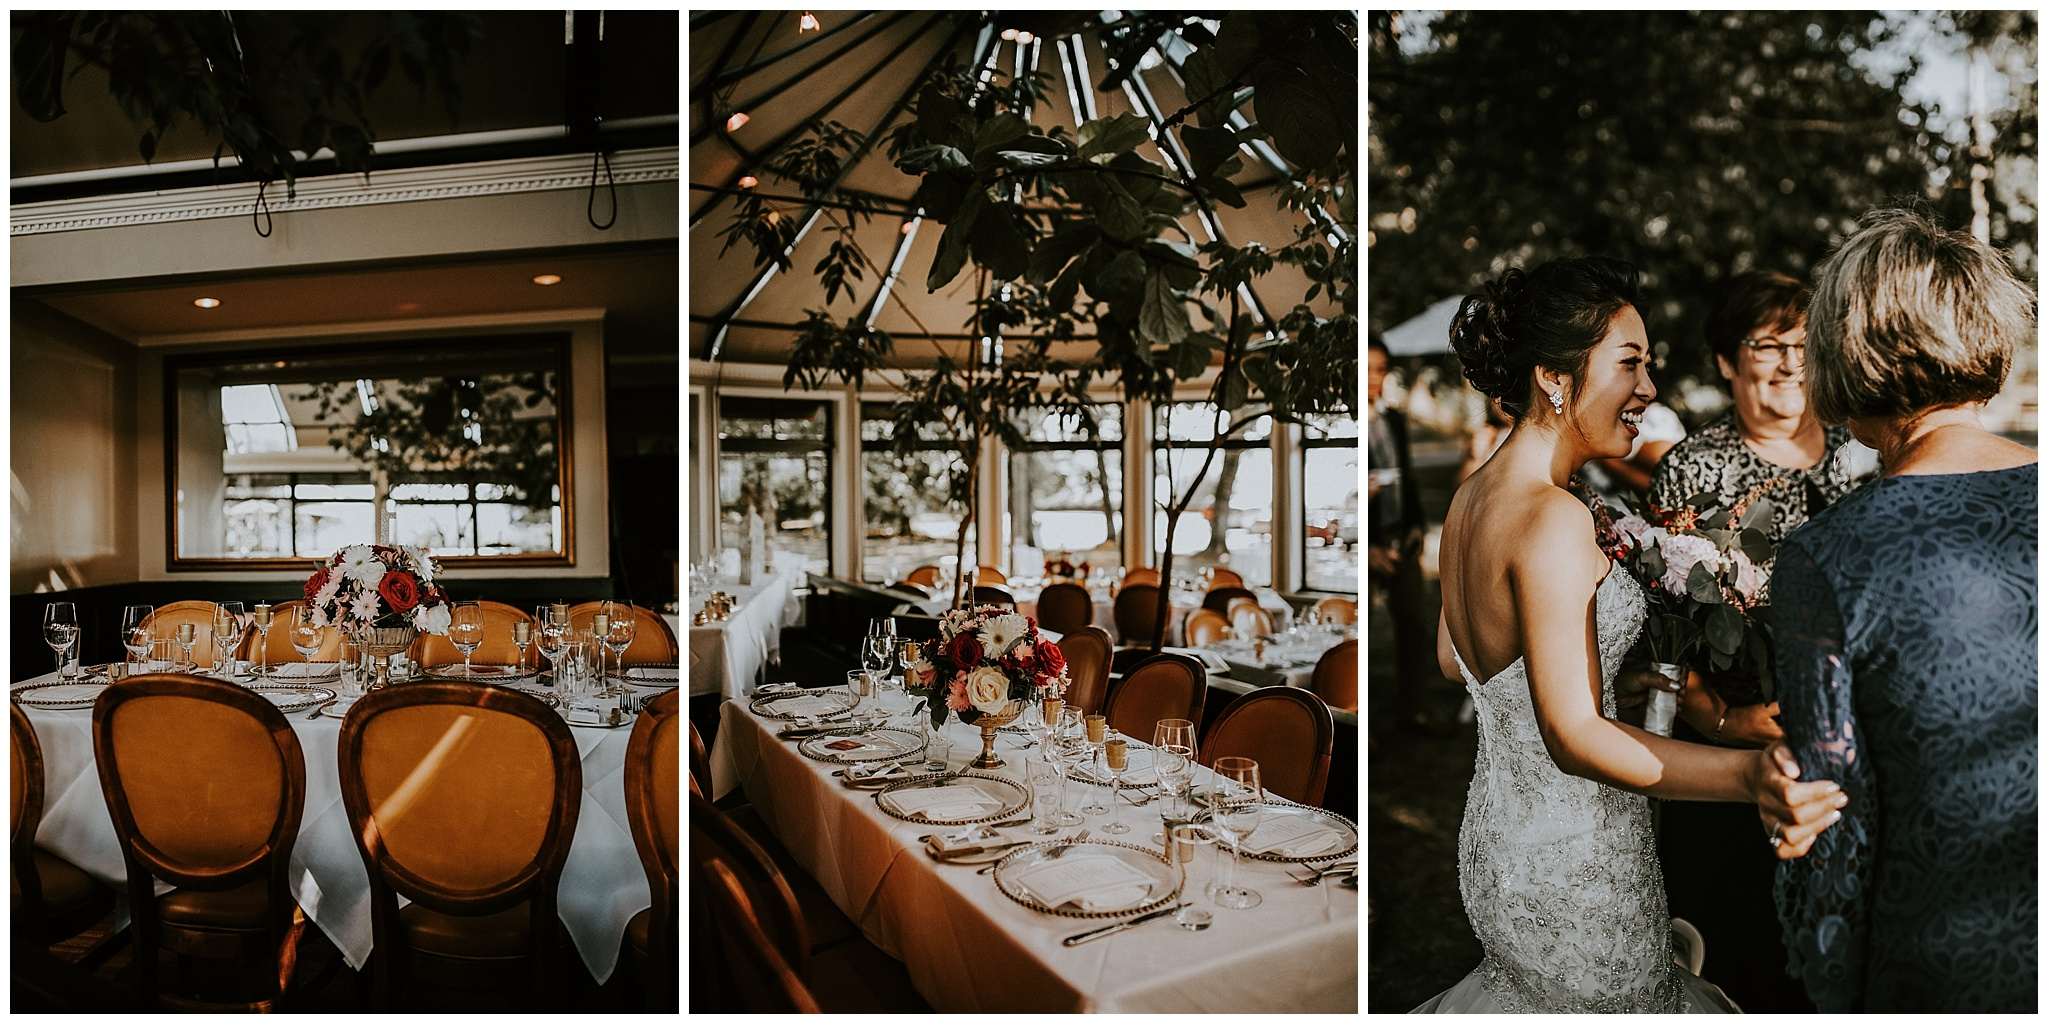 An outdoor wedding reception at the Tea House in Stanley Park